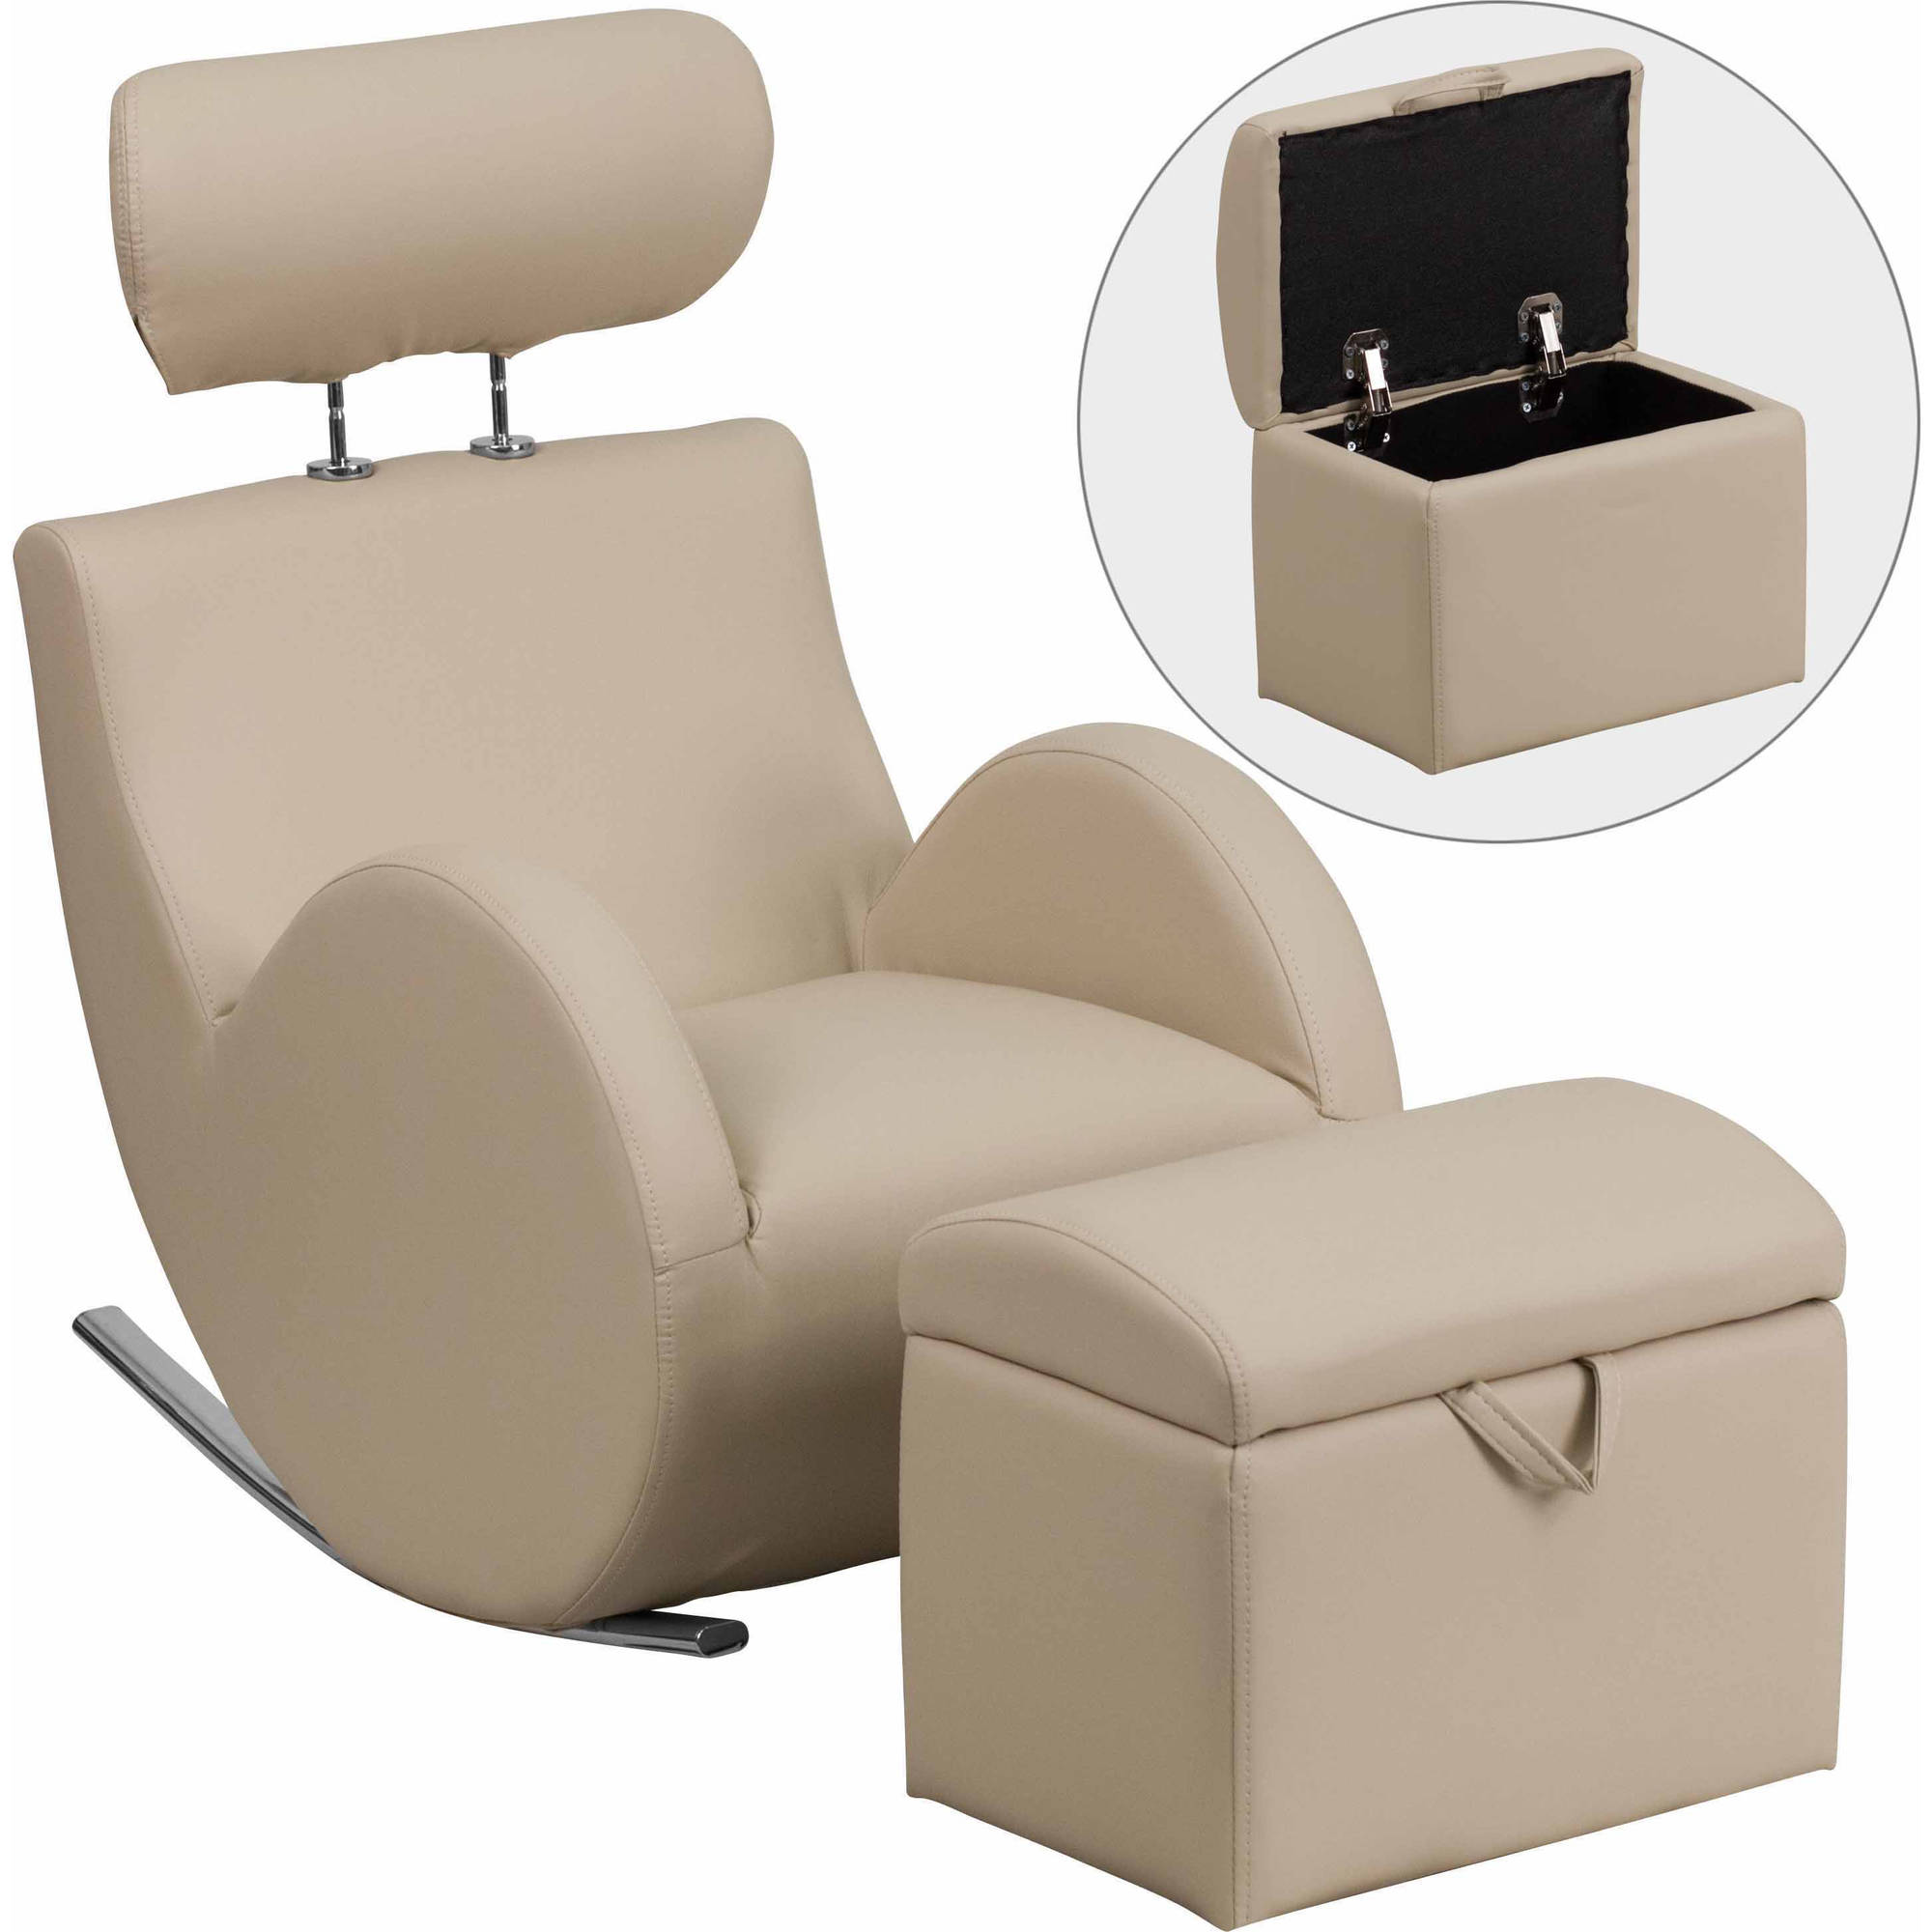 chairs with storage ottoman dxracer gaming chair 0flash furniture hercules series beige vinyl rocking w stock photo picture 1 of 2